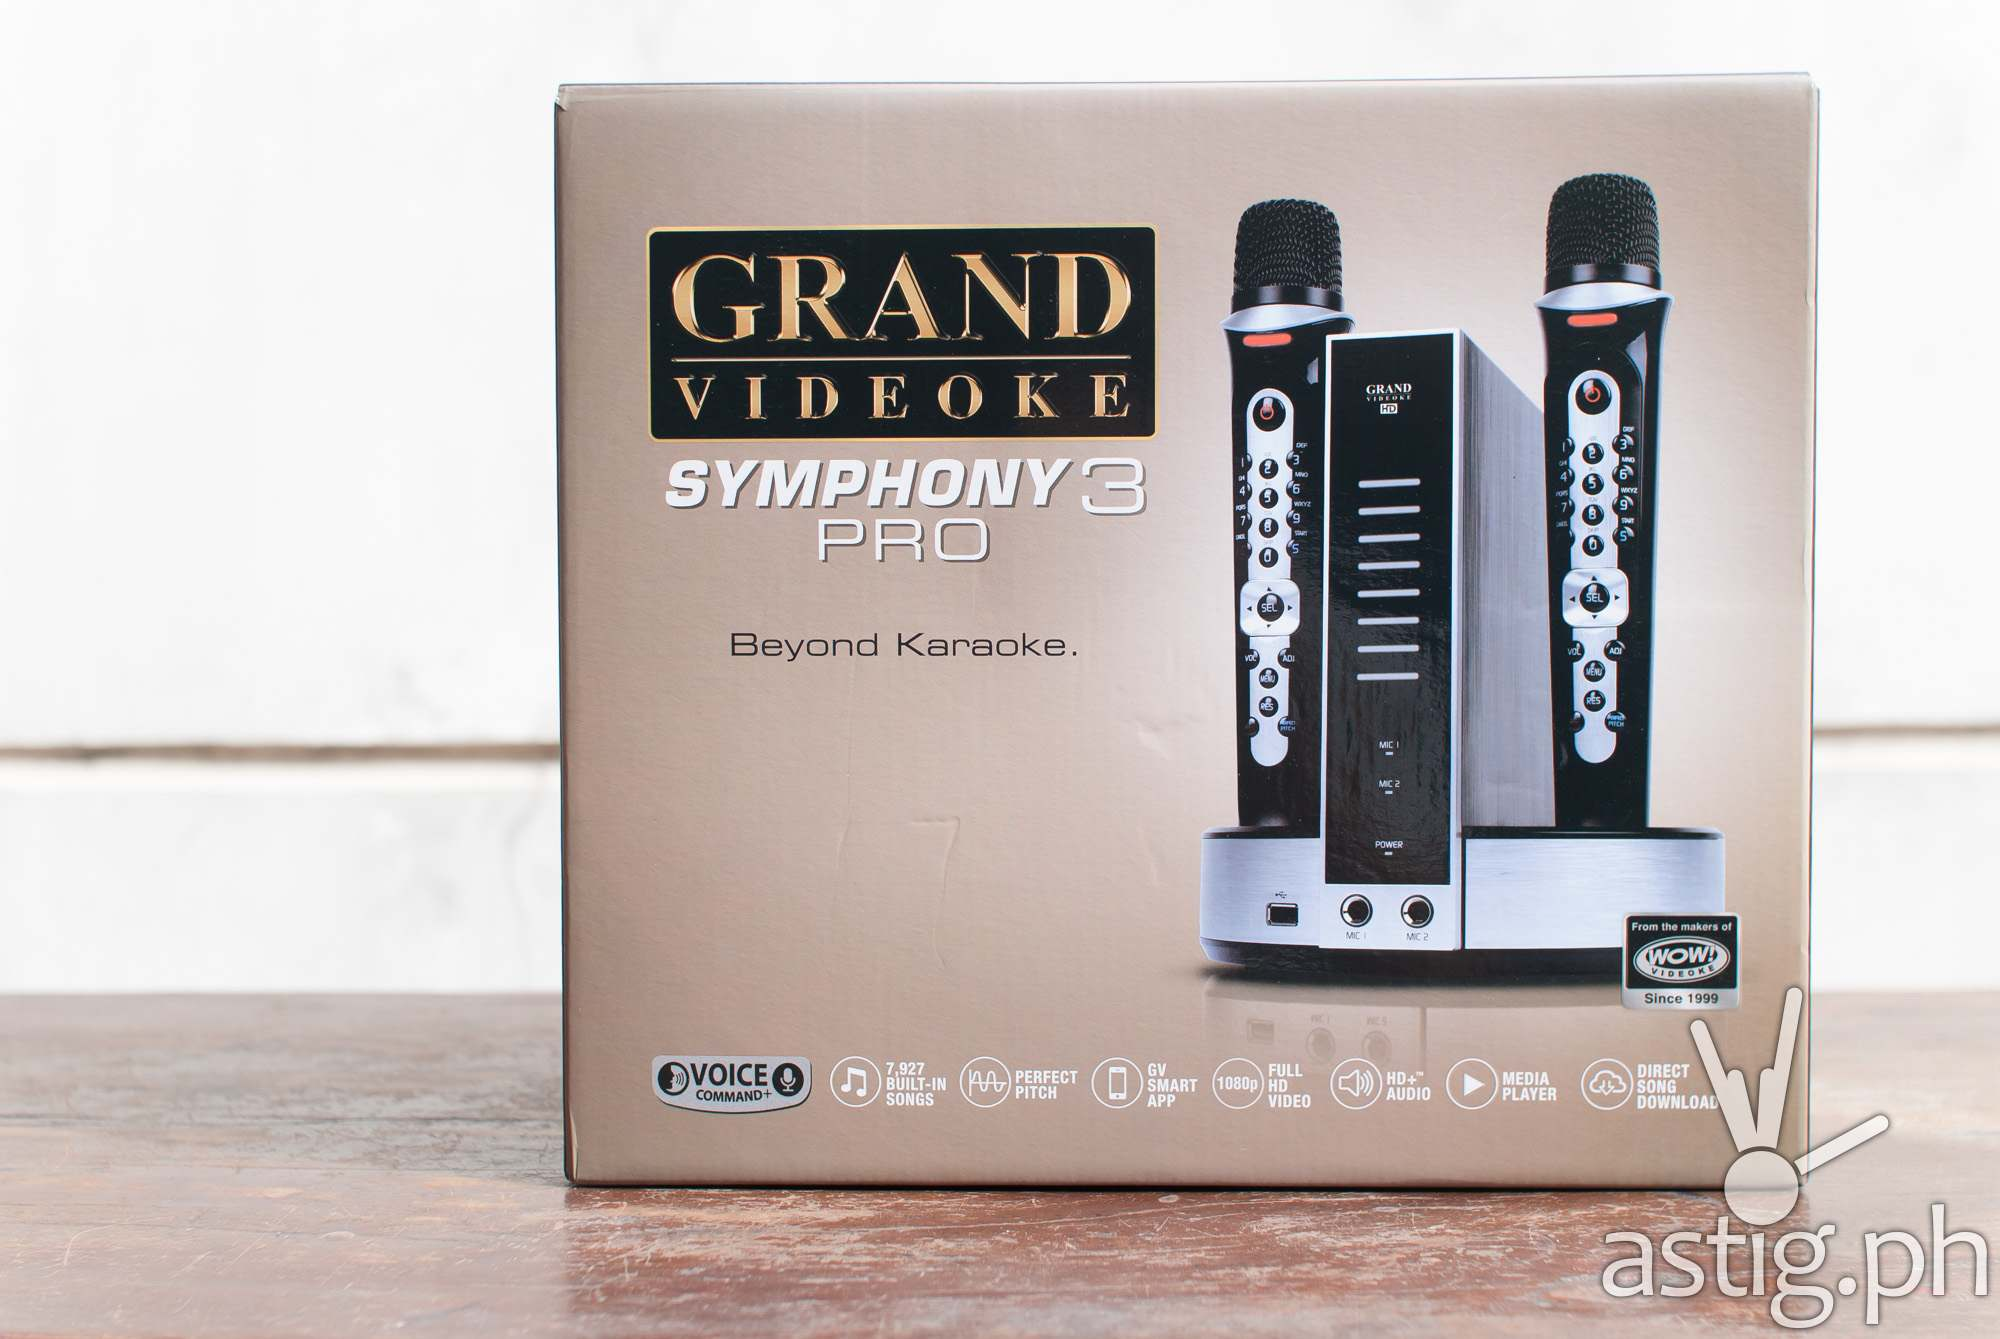 Grand Videoke Symphony 3 Pro review: the iPhone X of videoke